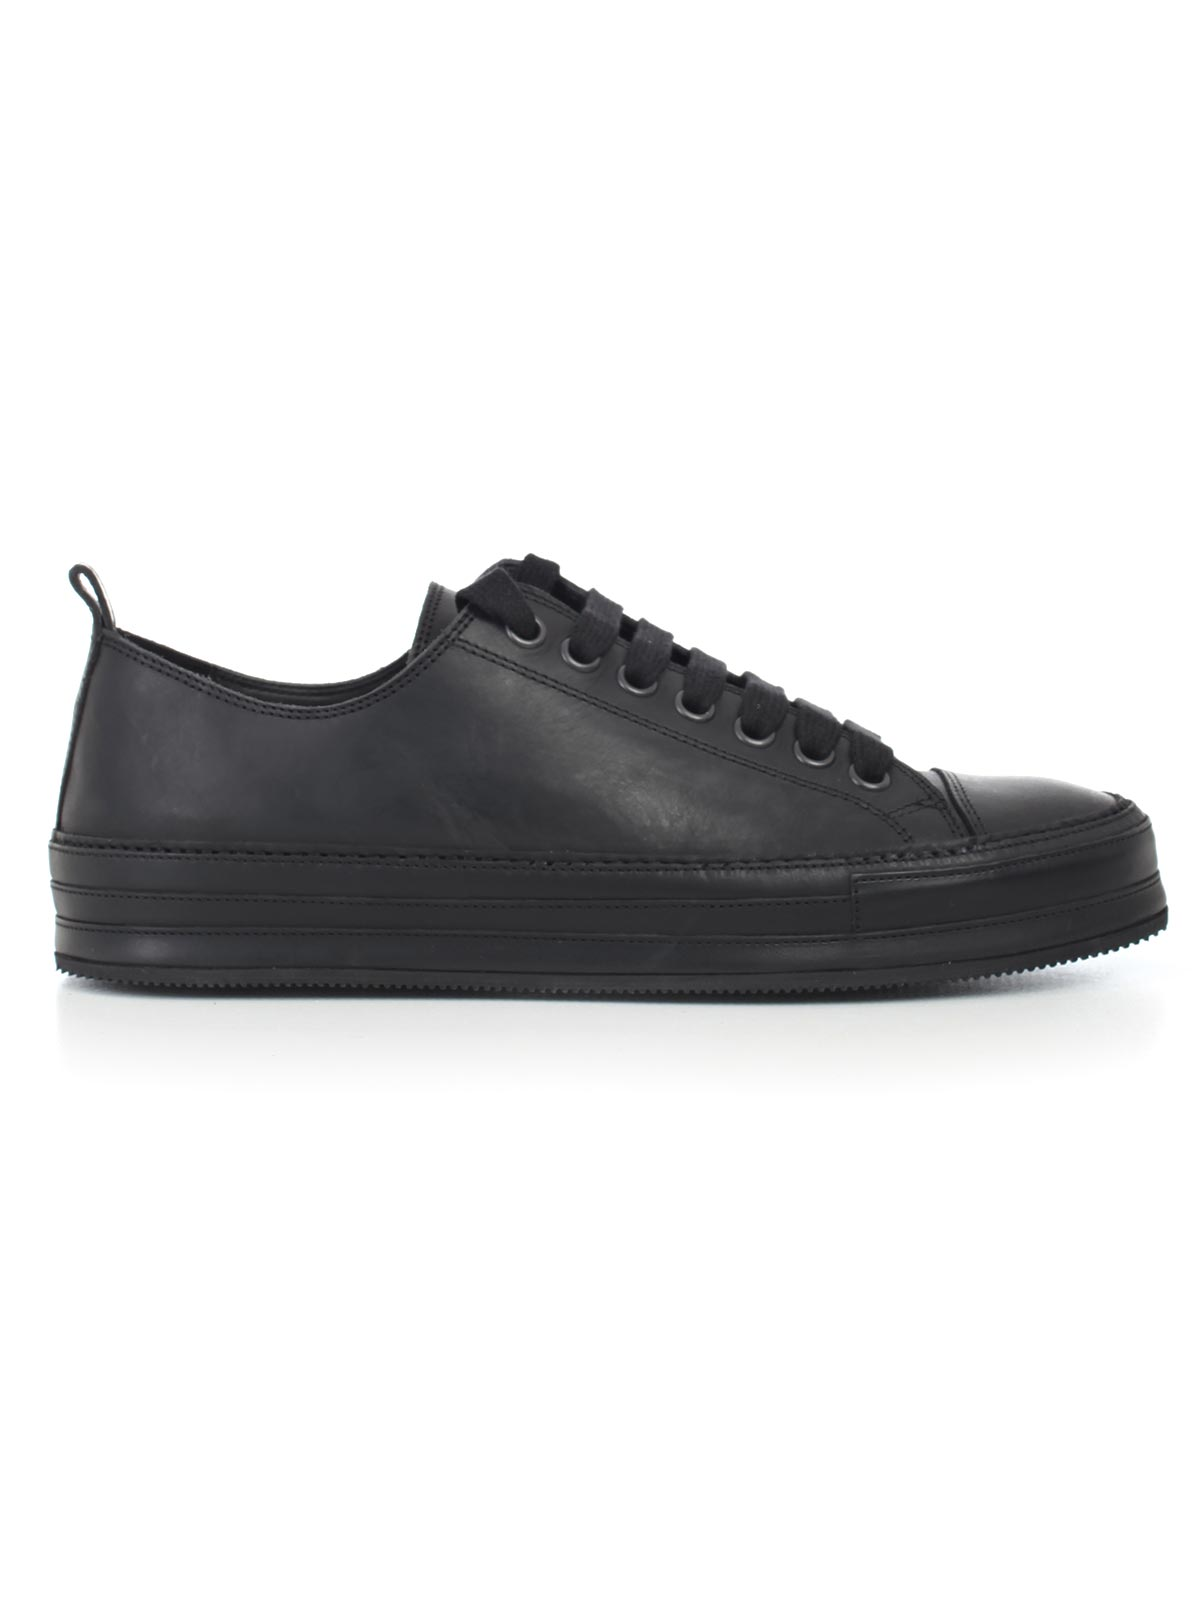 Picture of ANN DEMEULEMESTER Sneakers